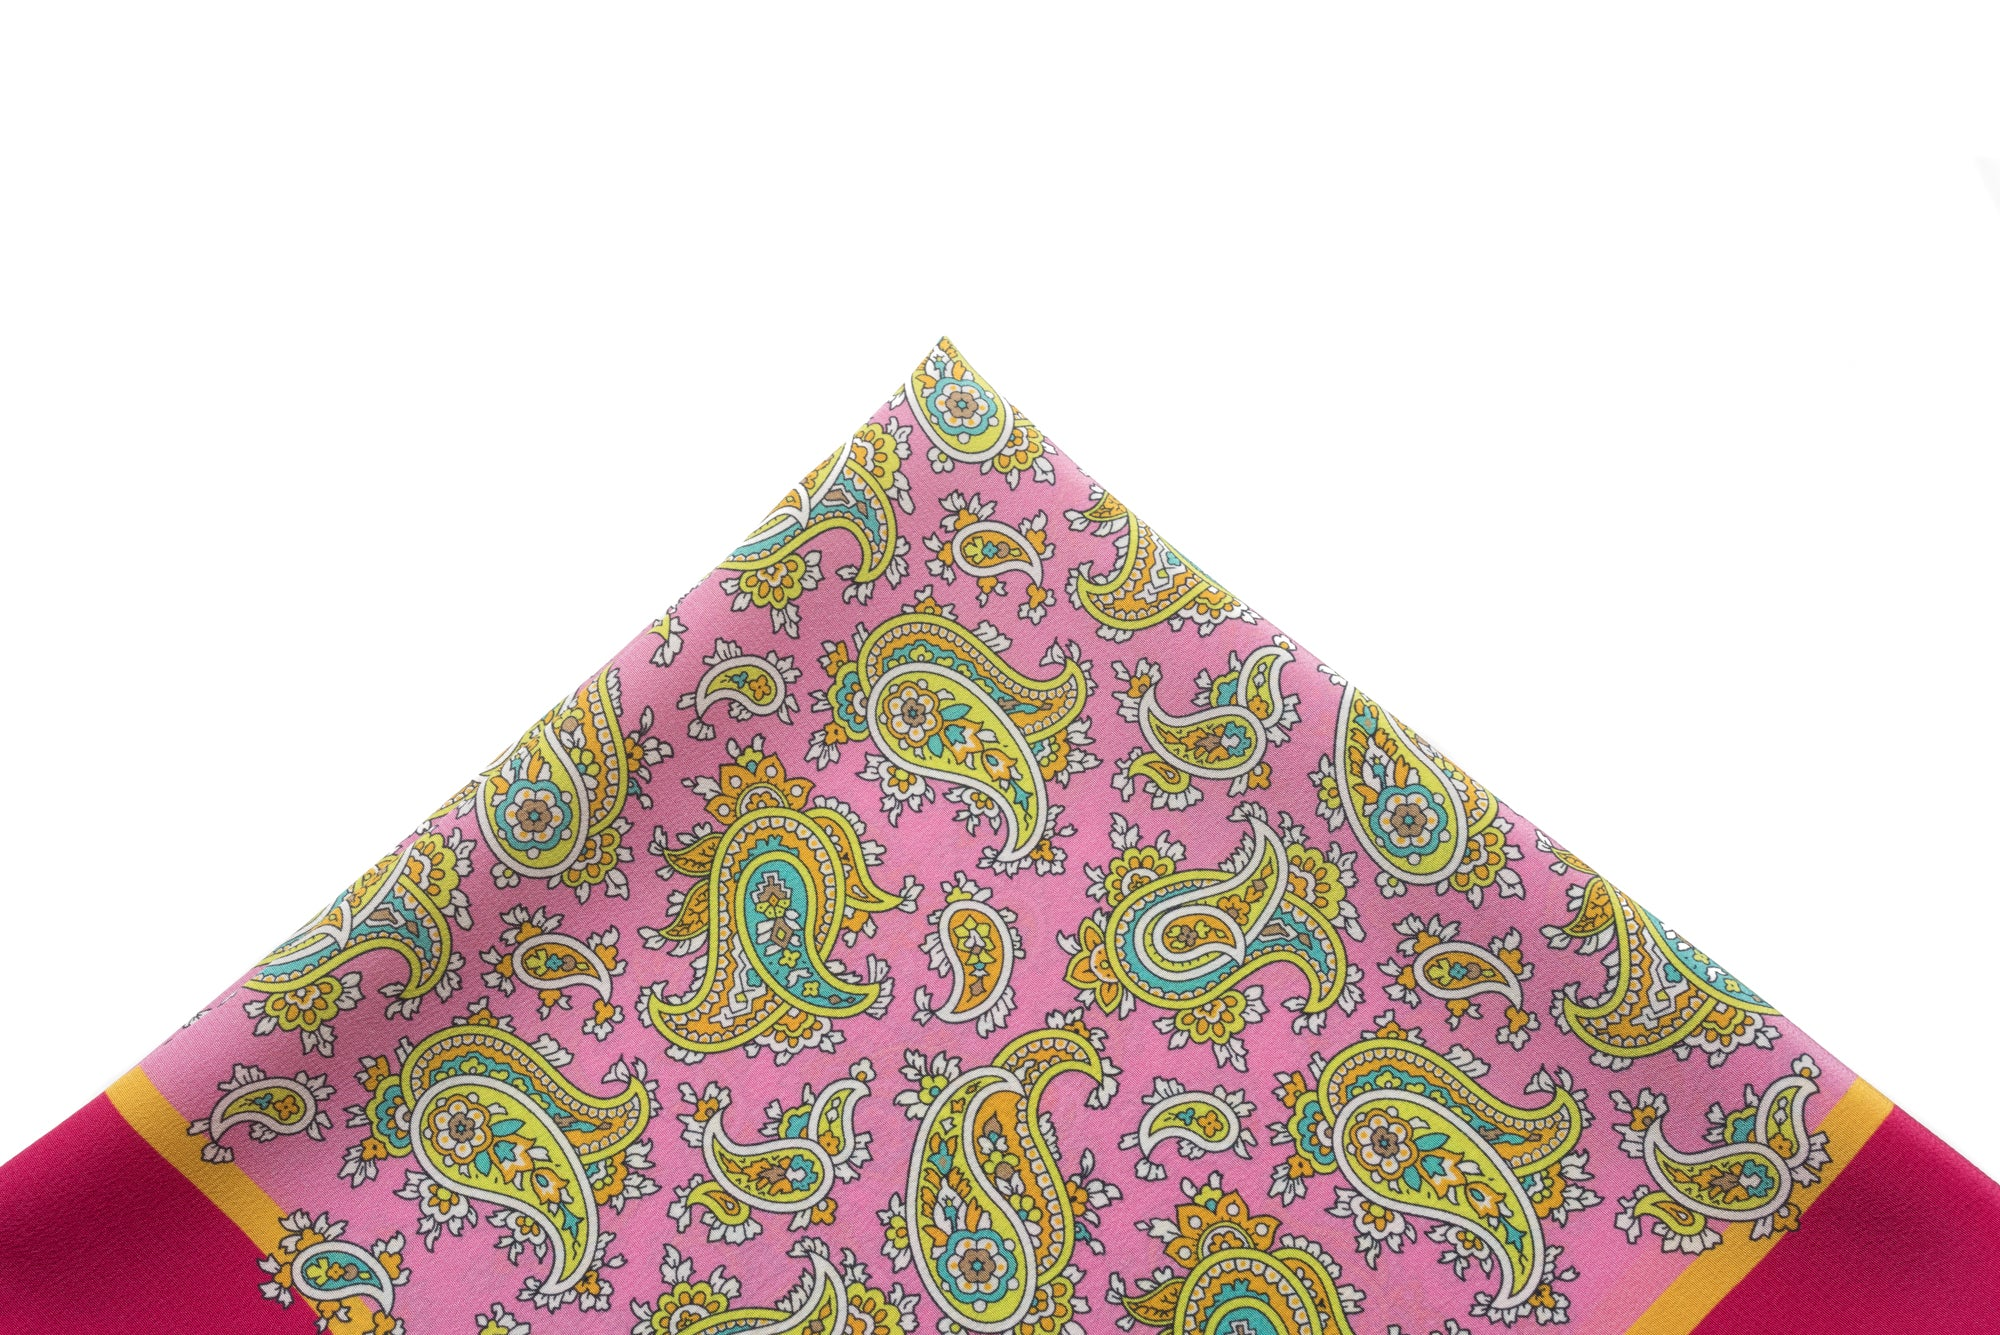 Pocket Square Pink - Colorful Paisley